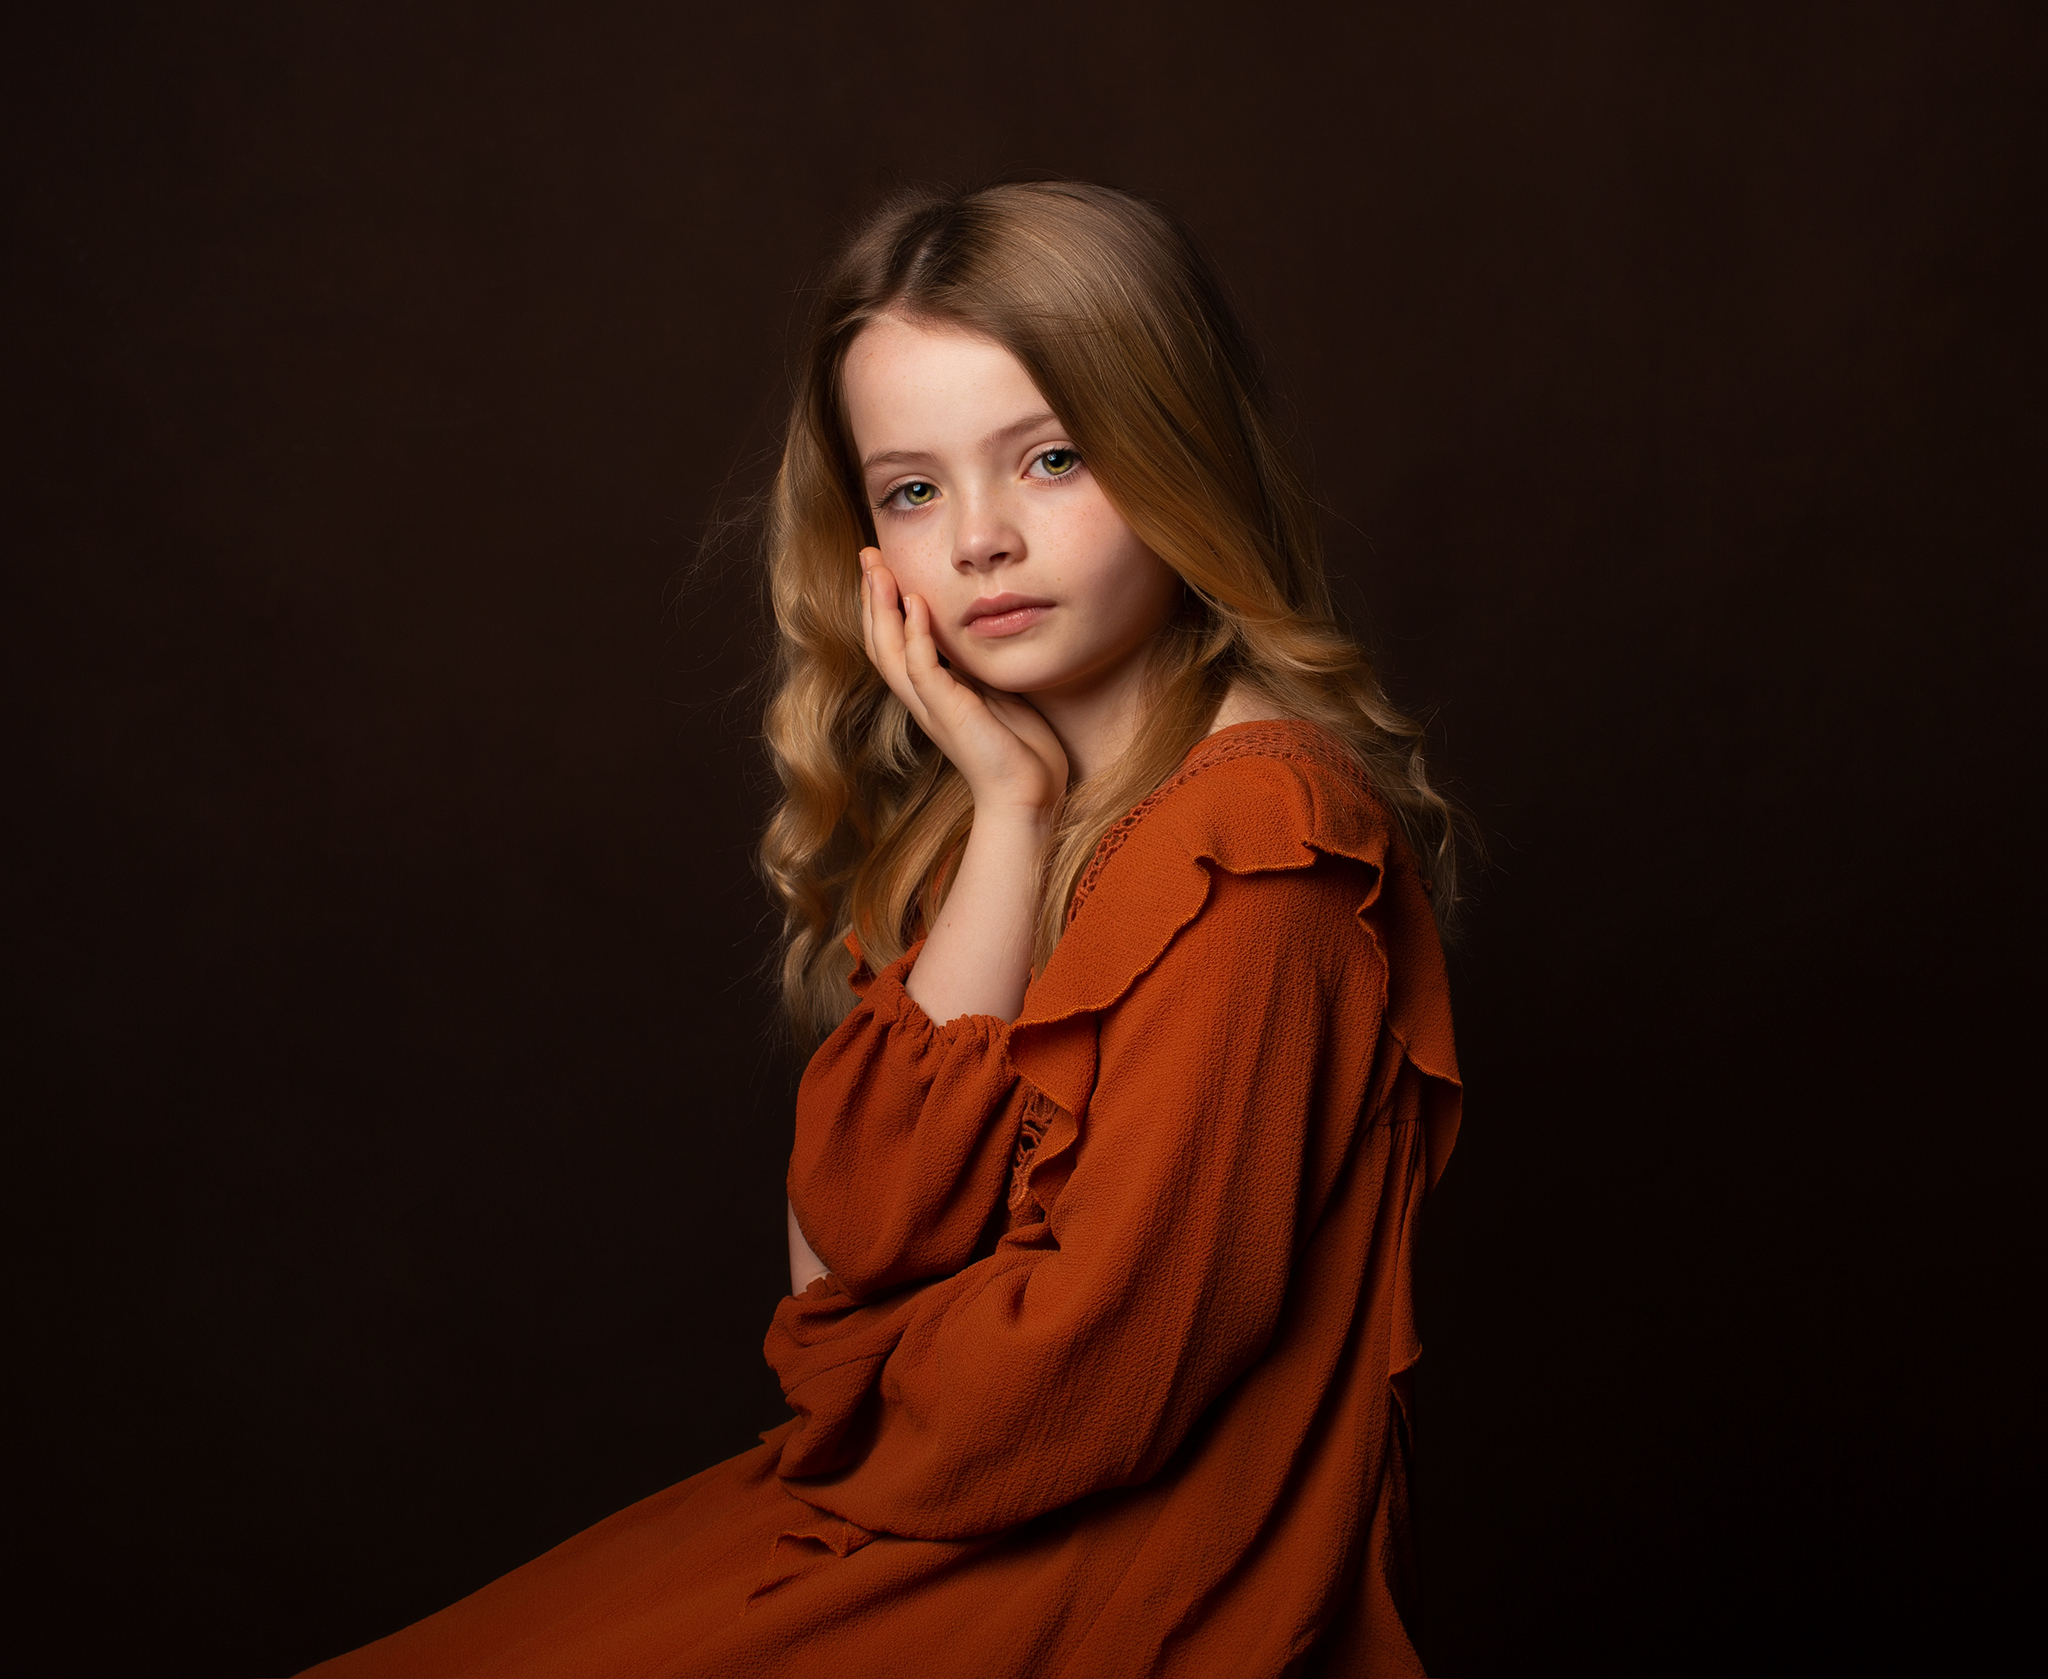 Elizabethg_fineart_photography_portrait_photographer_kingslangley_hertfordshire_brooke_bonnieandbetty_001.jpg